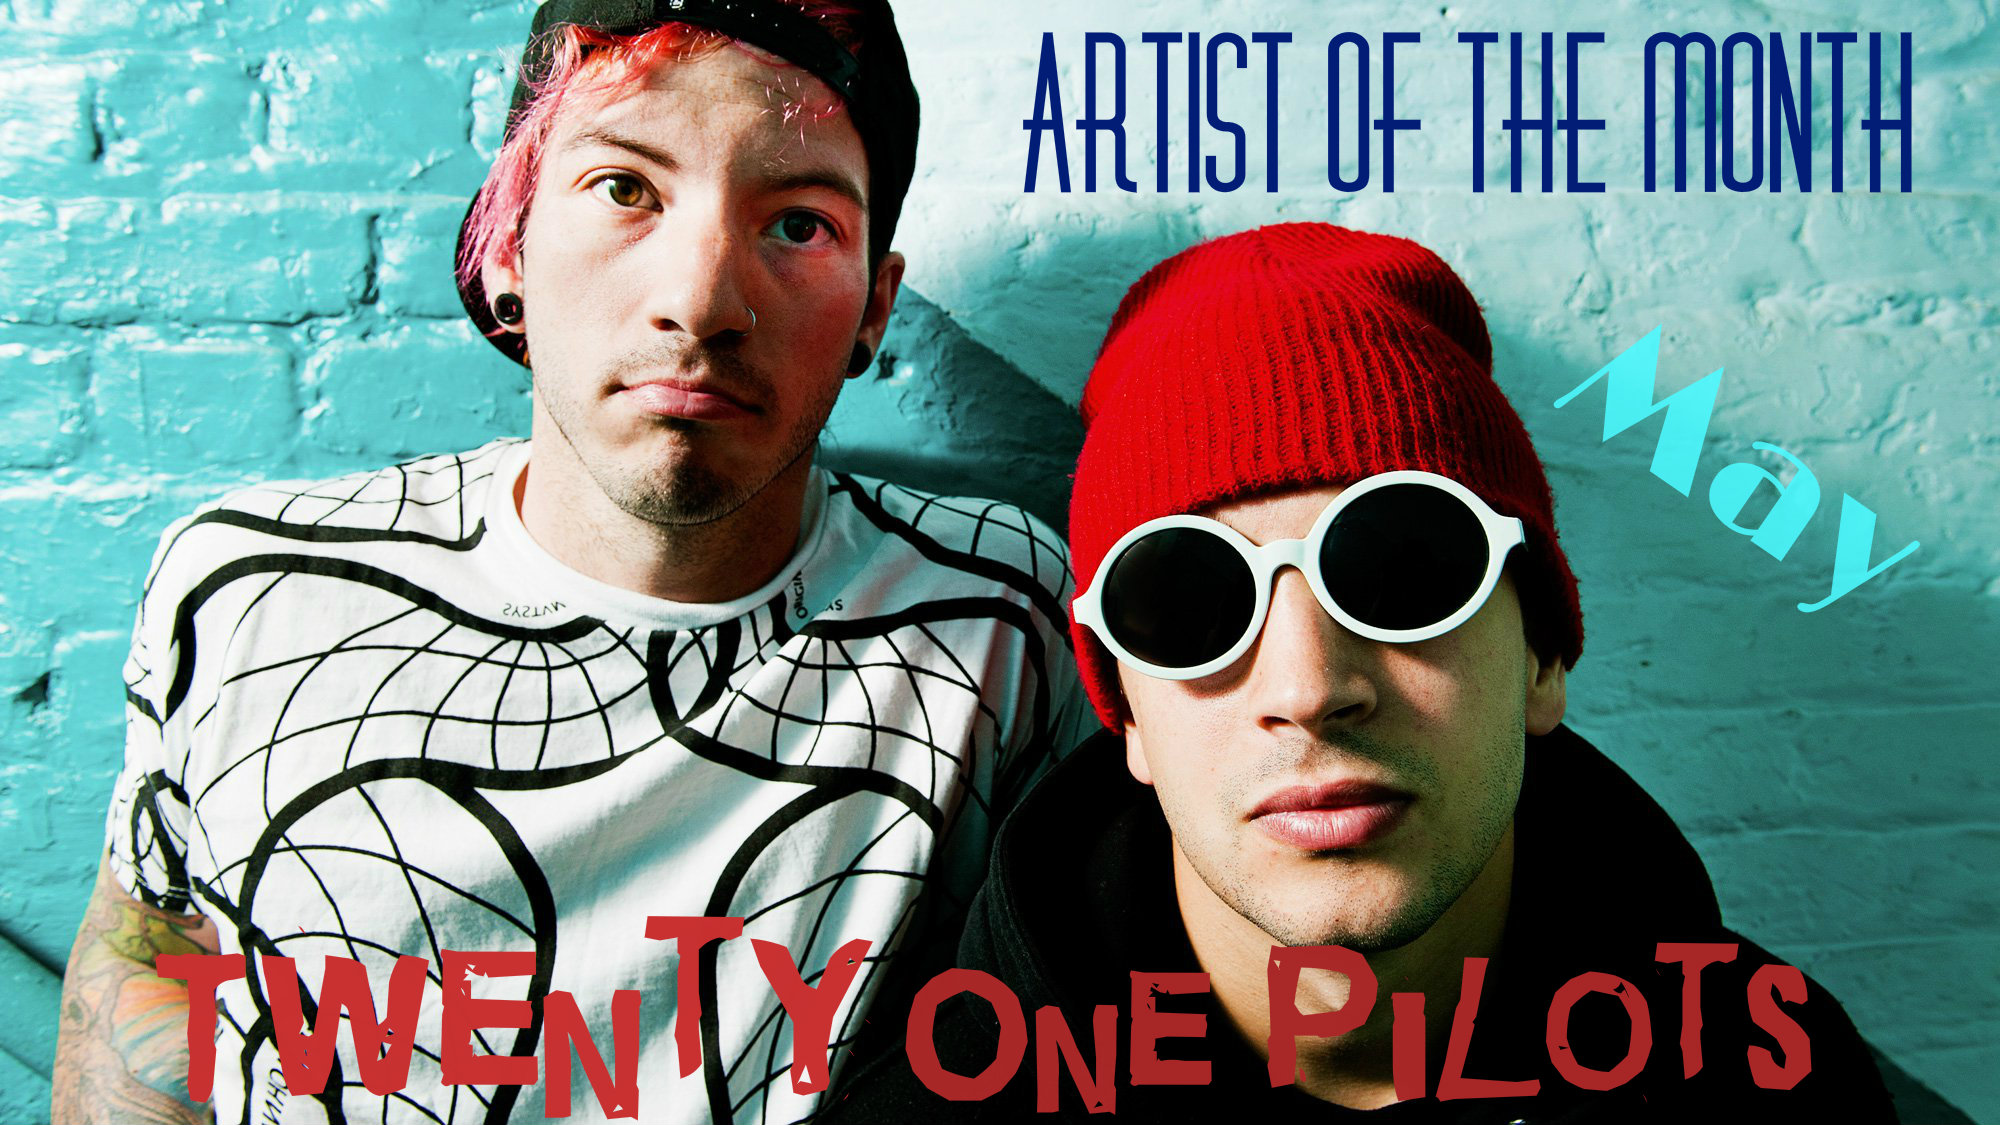 Artist of the Month -- Twenty One Pilots